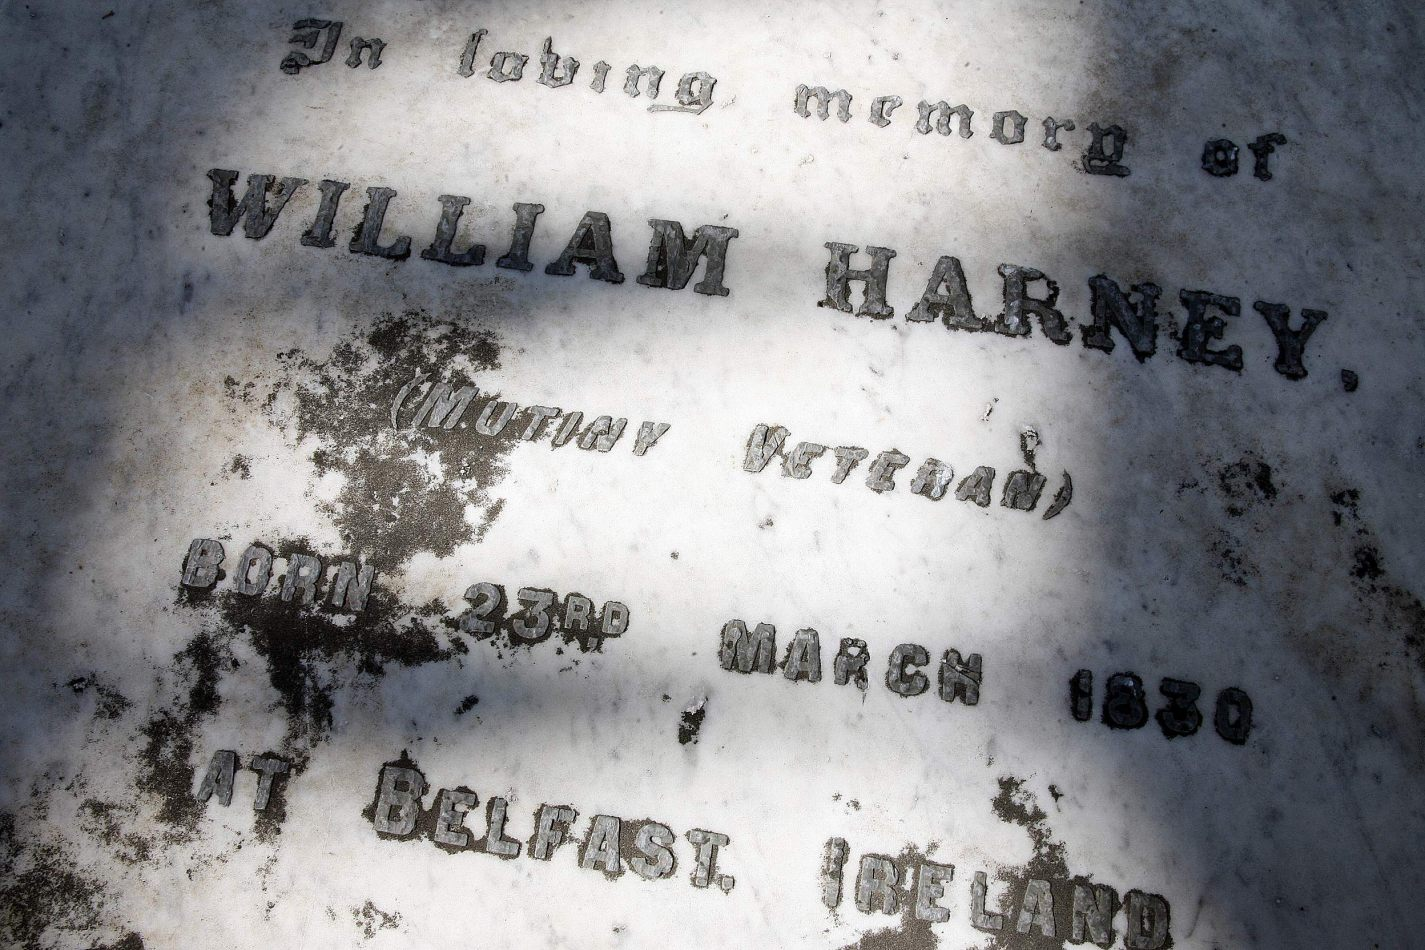 Anthony Ellis Photography: Waterline - William Harney (Mutiny Veteran)